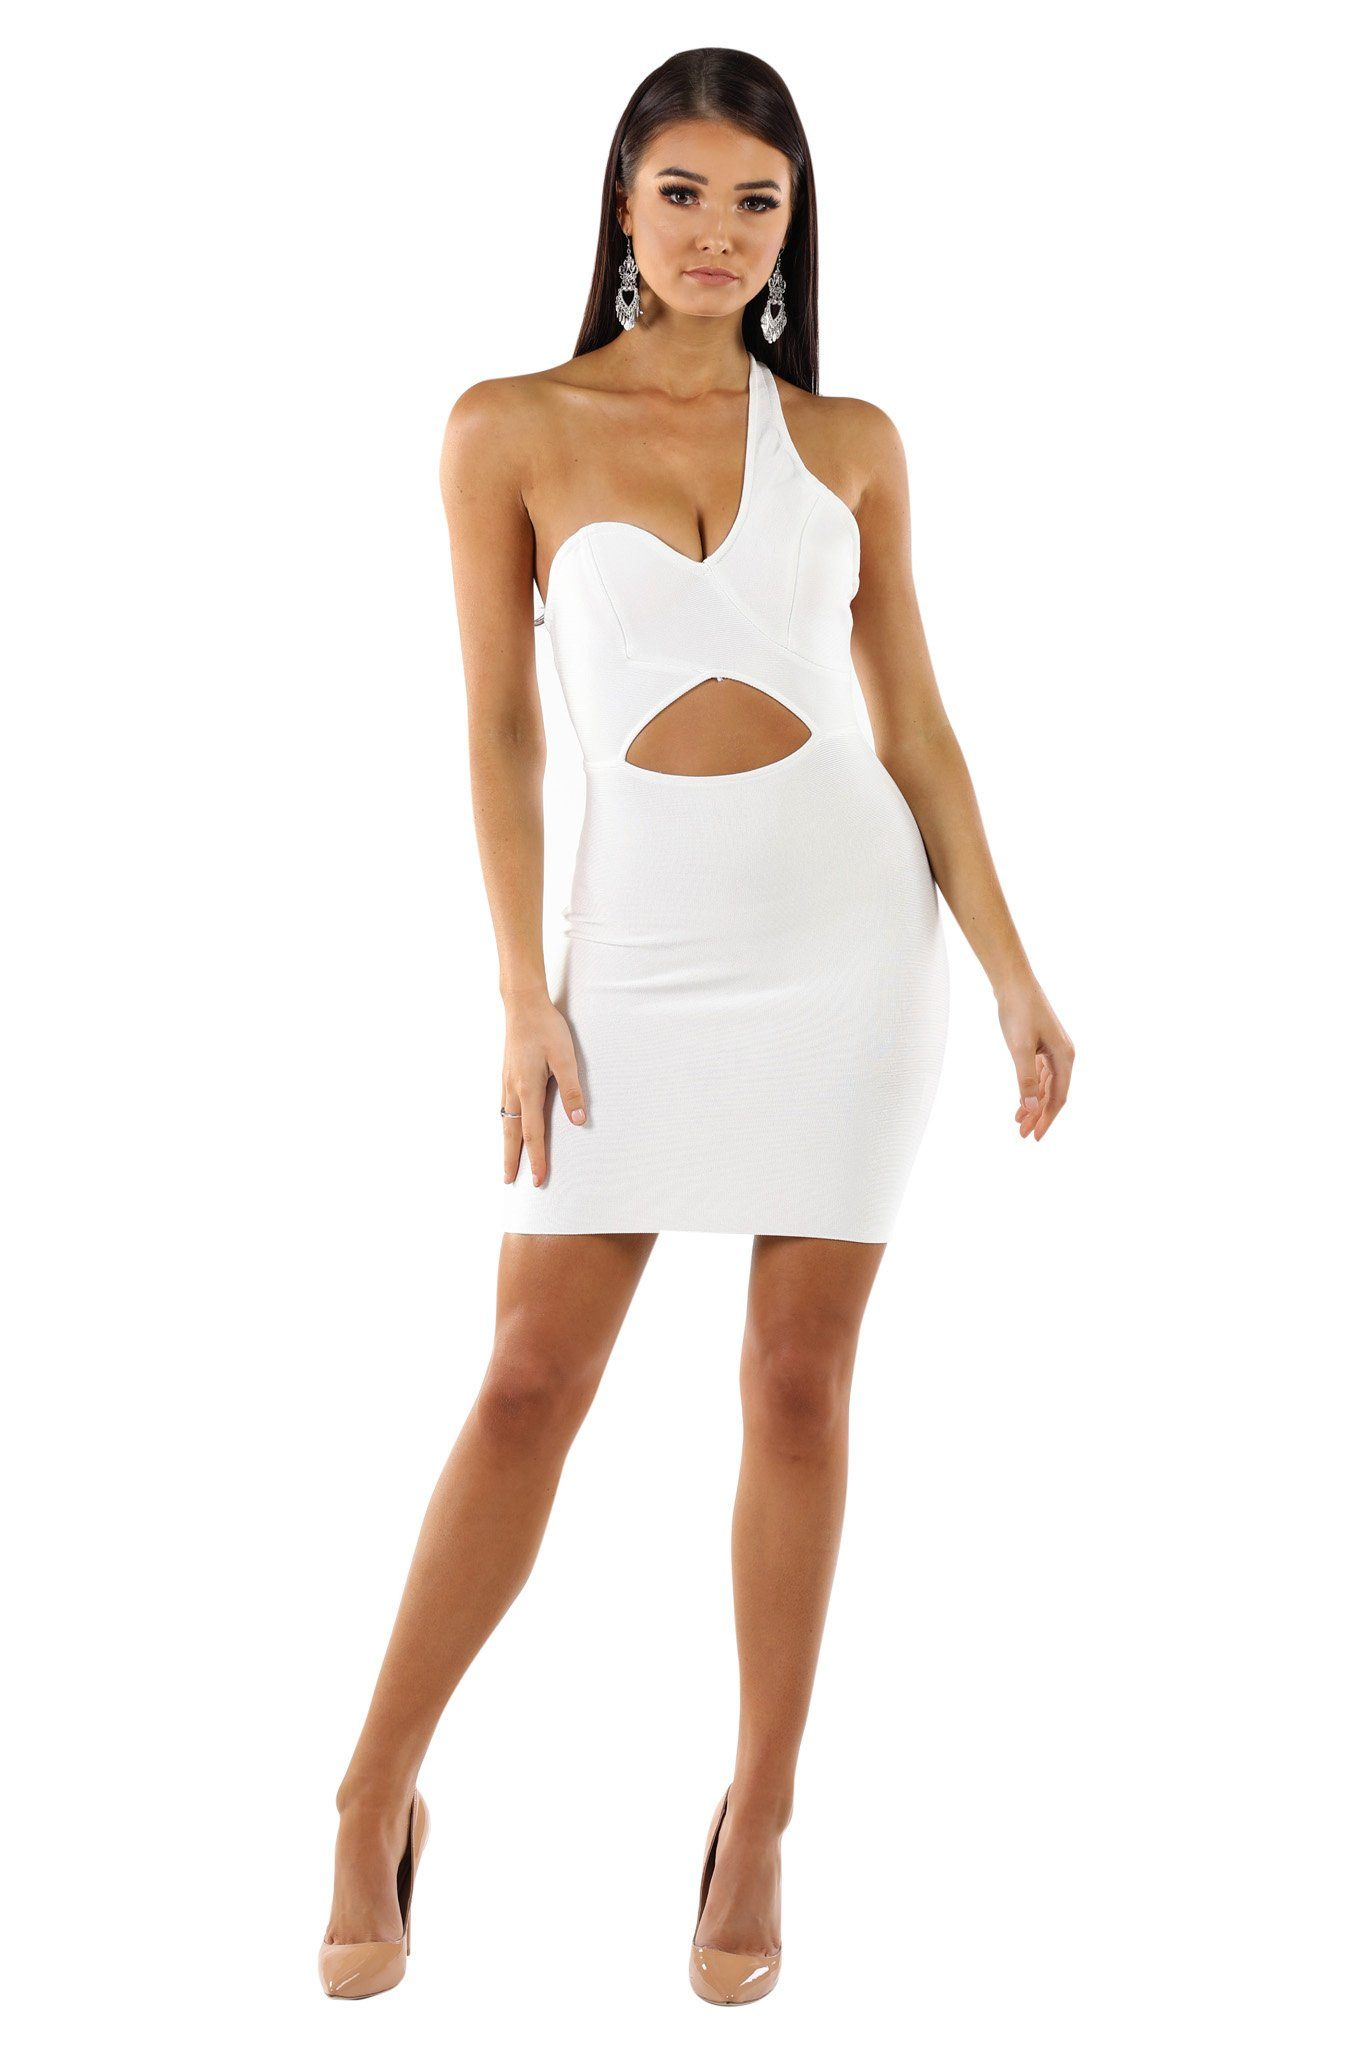 White sleeveless above-knee length bandage dress one shoulder strap and cutout